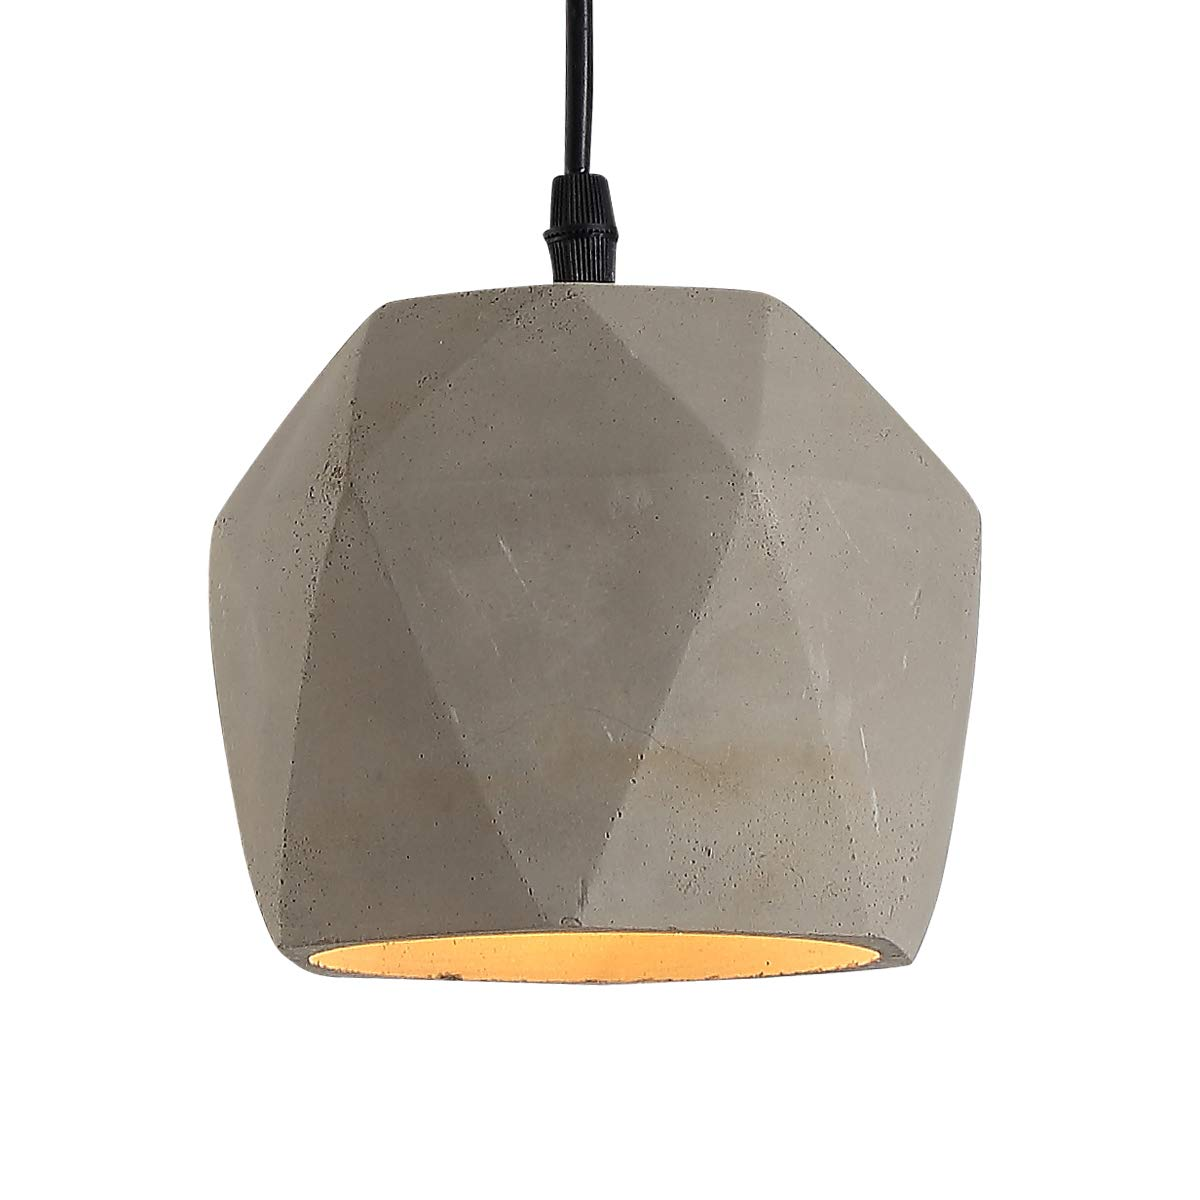 HOMIFORCE UL Listed Industrial Style 1-Light Adjustable Concrete Pendant Light with Cement Shade in Grey Finish-Modern Industrial Edison Style Hanging CL2017056 (Westphal Grey)